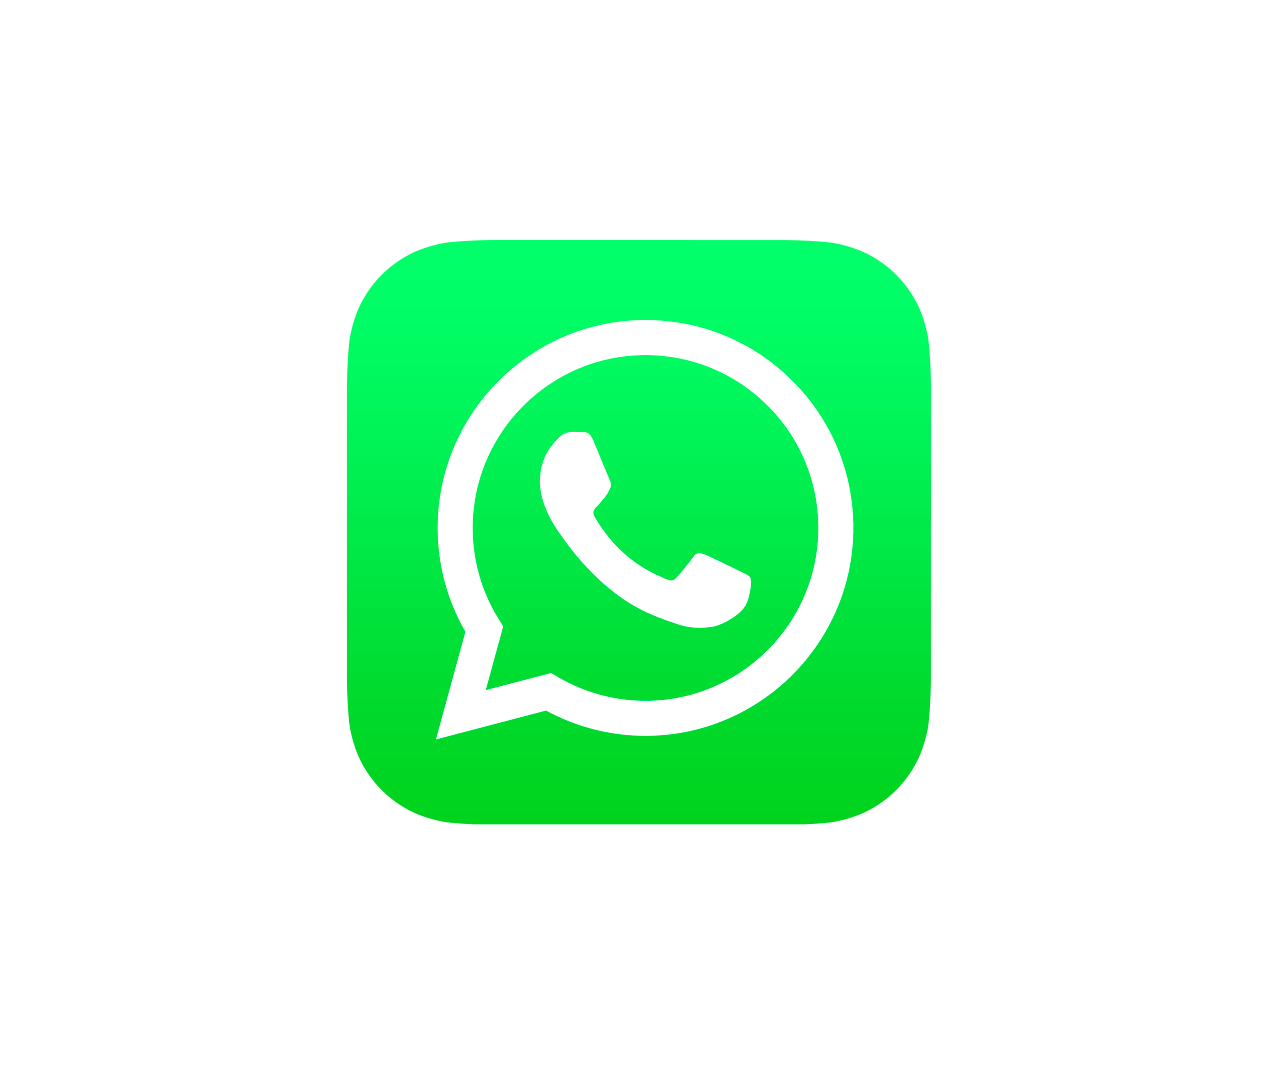 Whatsapp Ios Icon transparent PNG.